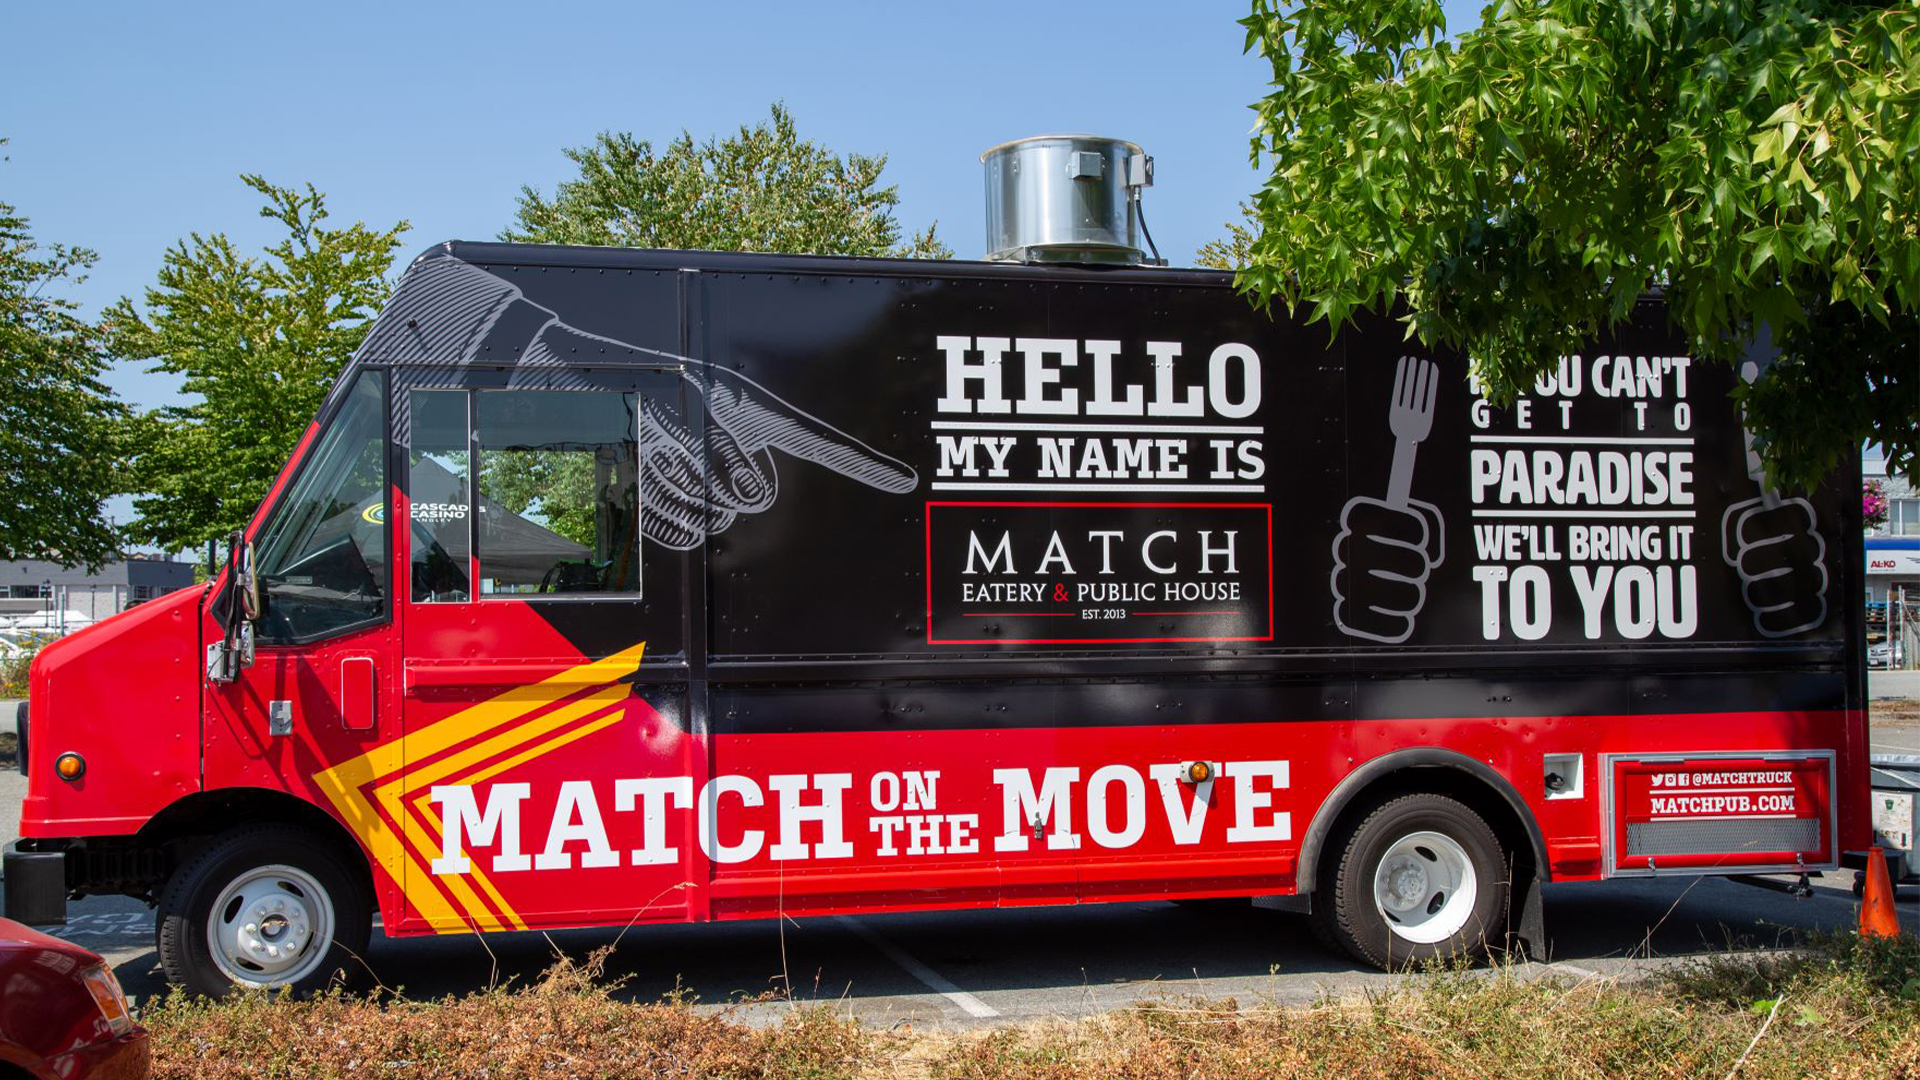 MATCH EATERY & PUBLIC HOUSE IS SET TO LAUNCH A FOOD TRUCK IN SUMMER 2021